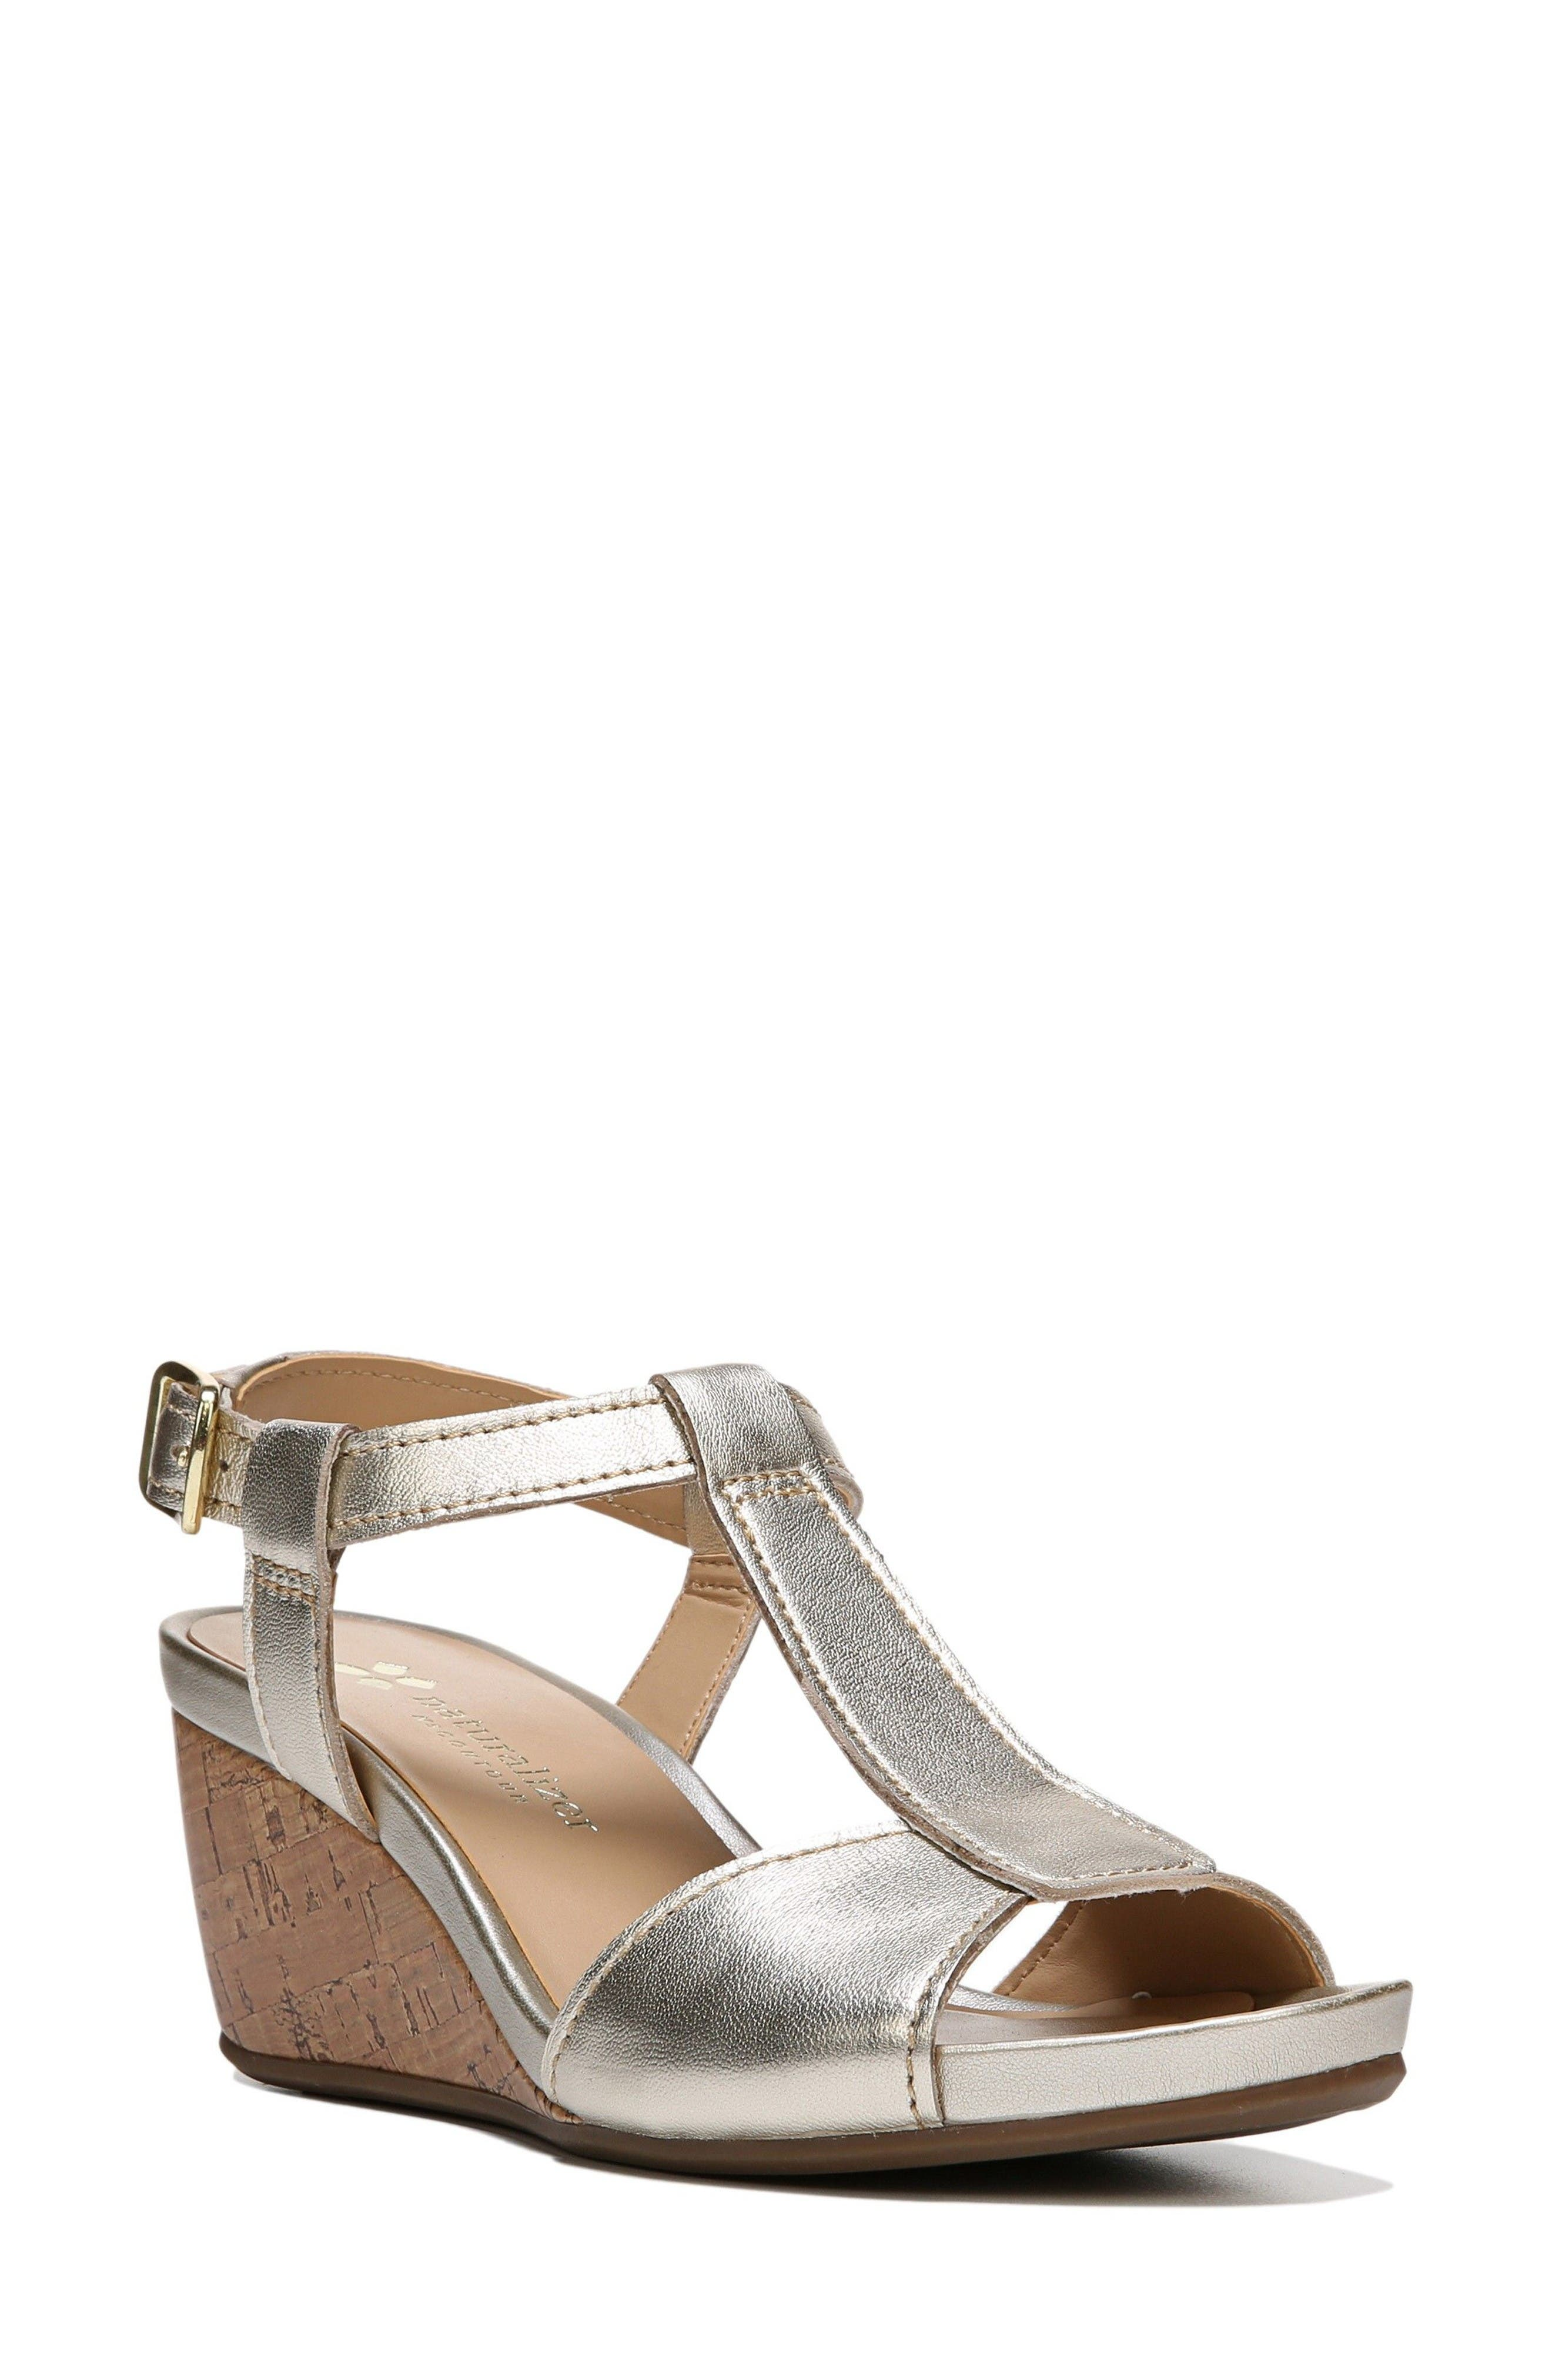 Main Image - Naturalizer Camilla Wedge Sandal (Women)